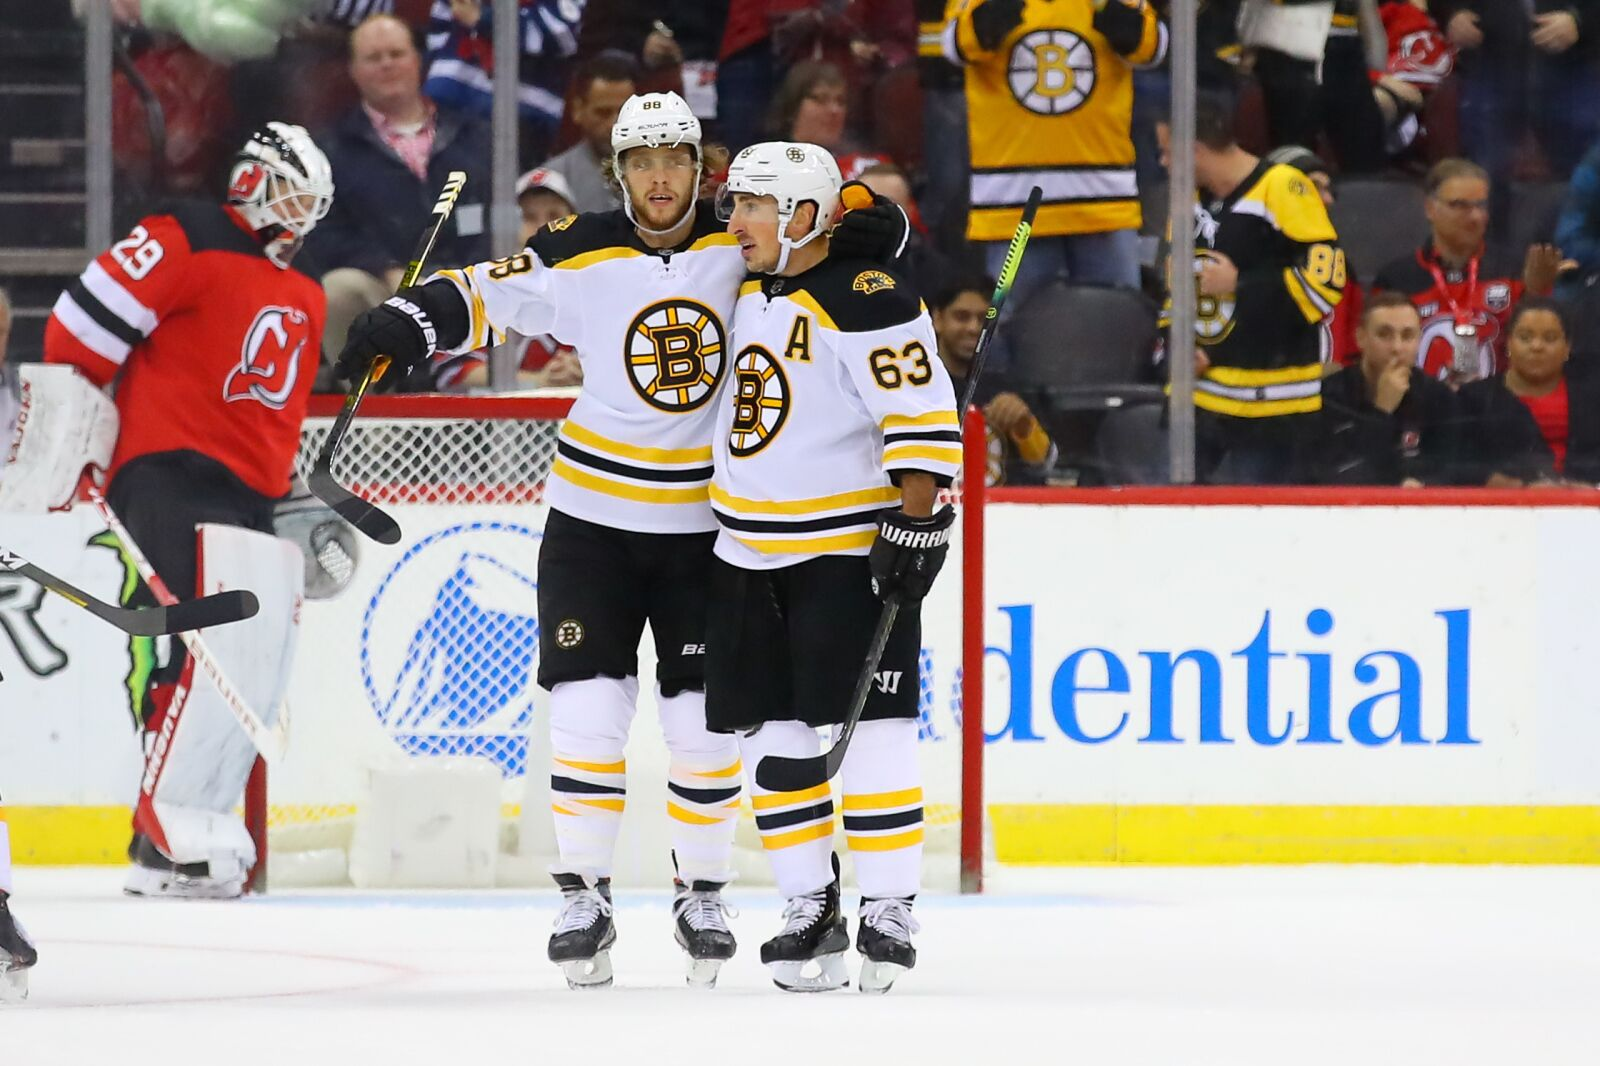 Boston Bruins: Past two games give reason to break up top line